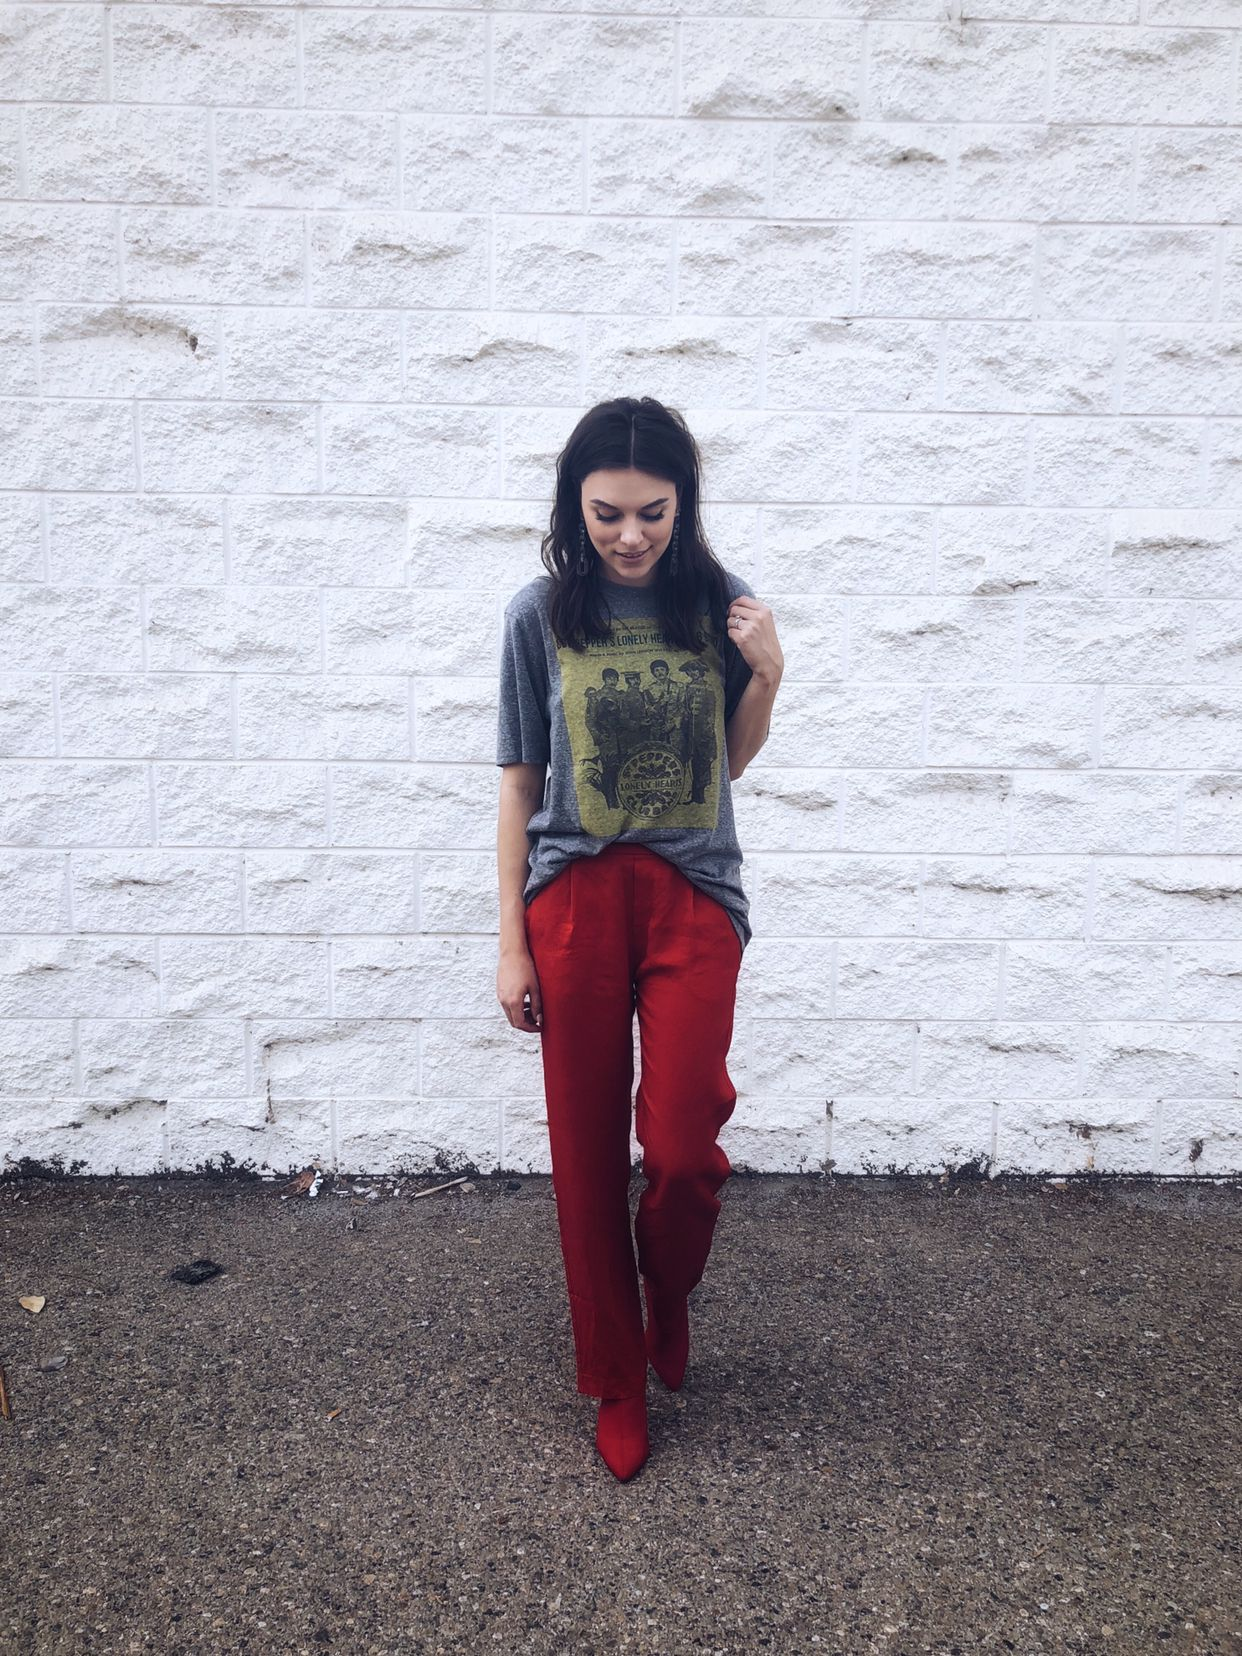 Pin By Lynnlyss On Lynnlyss Looks Red Pants Red Shoes Photo Video